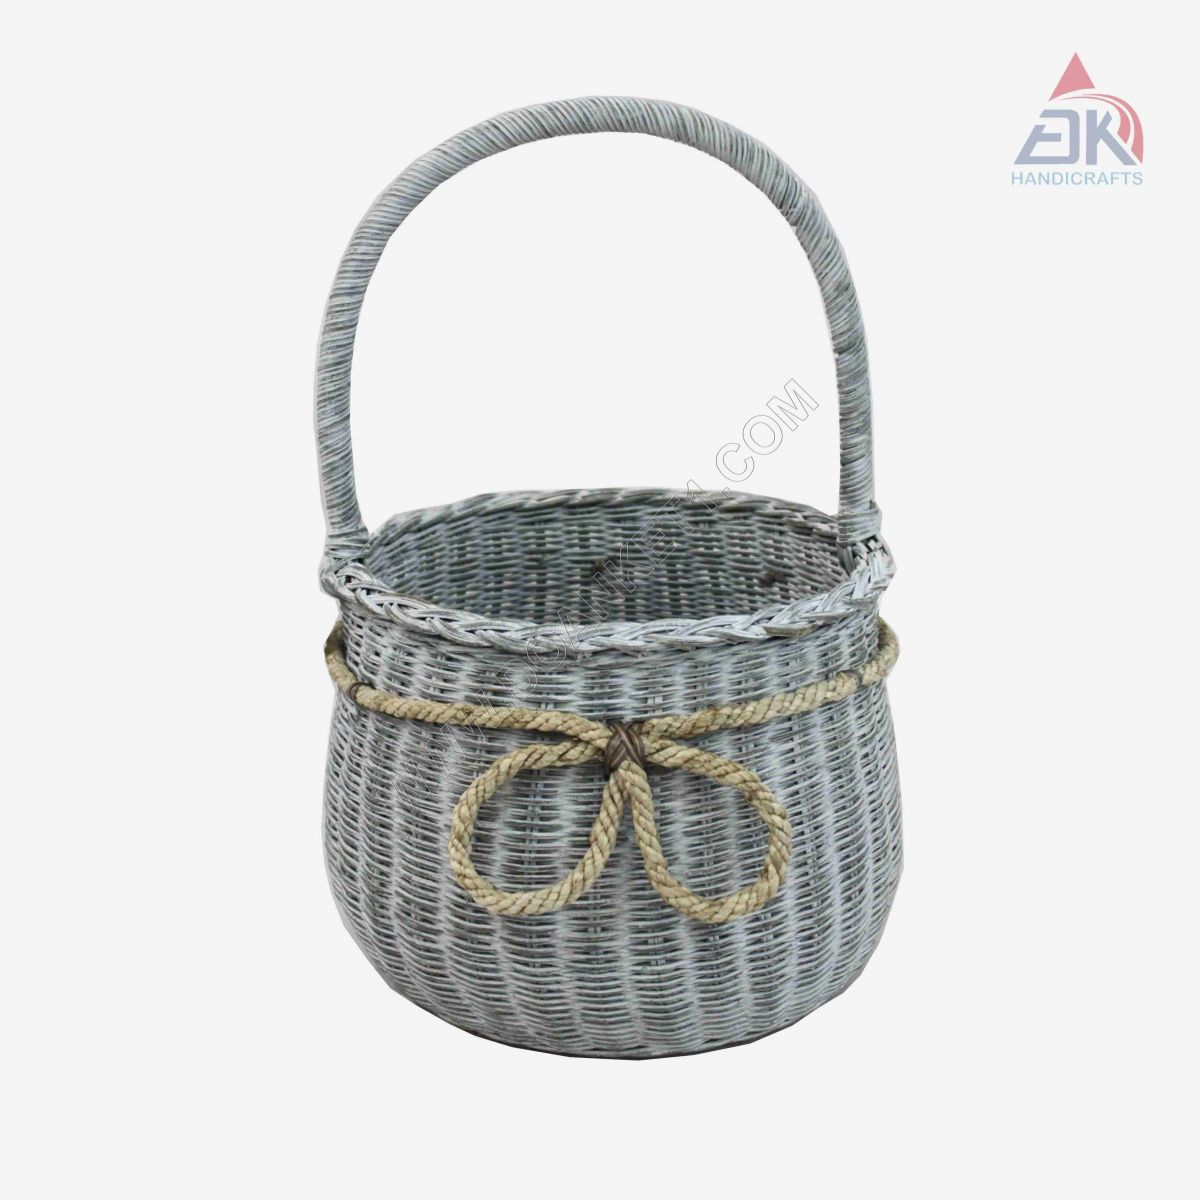 WICKER HANDLE BASKET # DK468